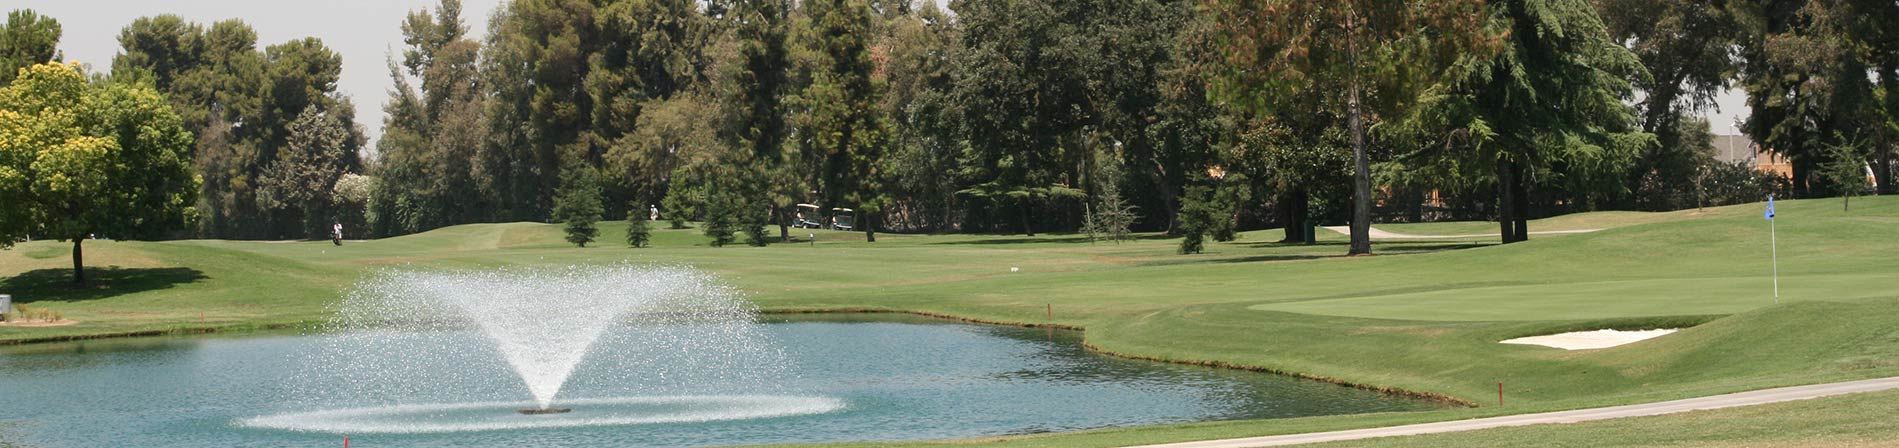 fountain at the golf course